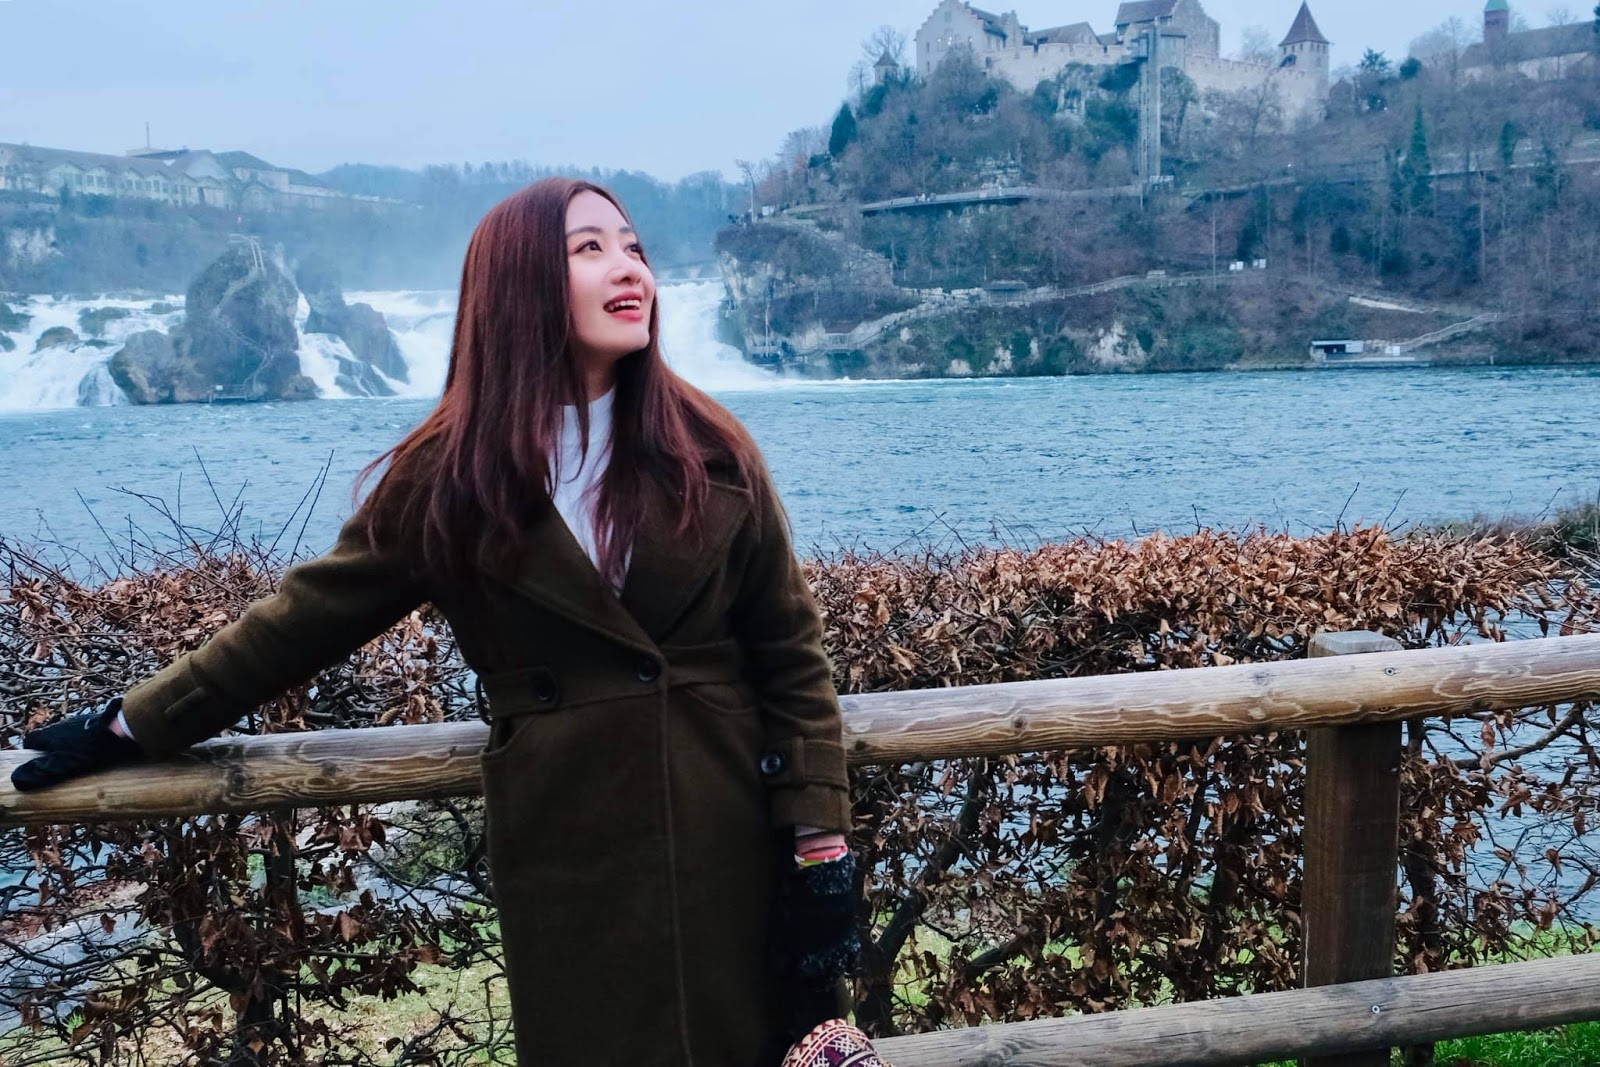 Yu Thandar Tin in Switzerland : Yu Travel Diary Photos